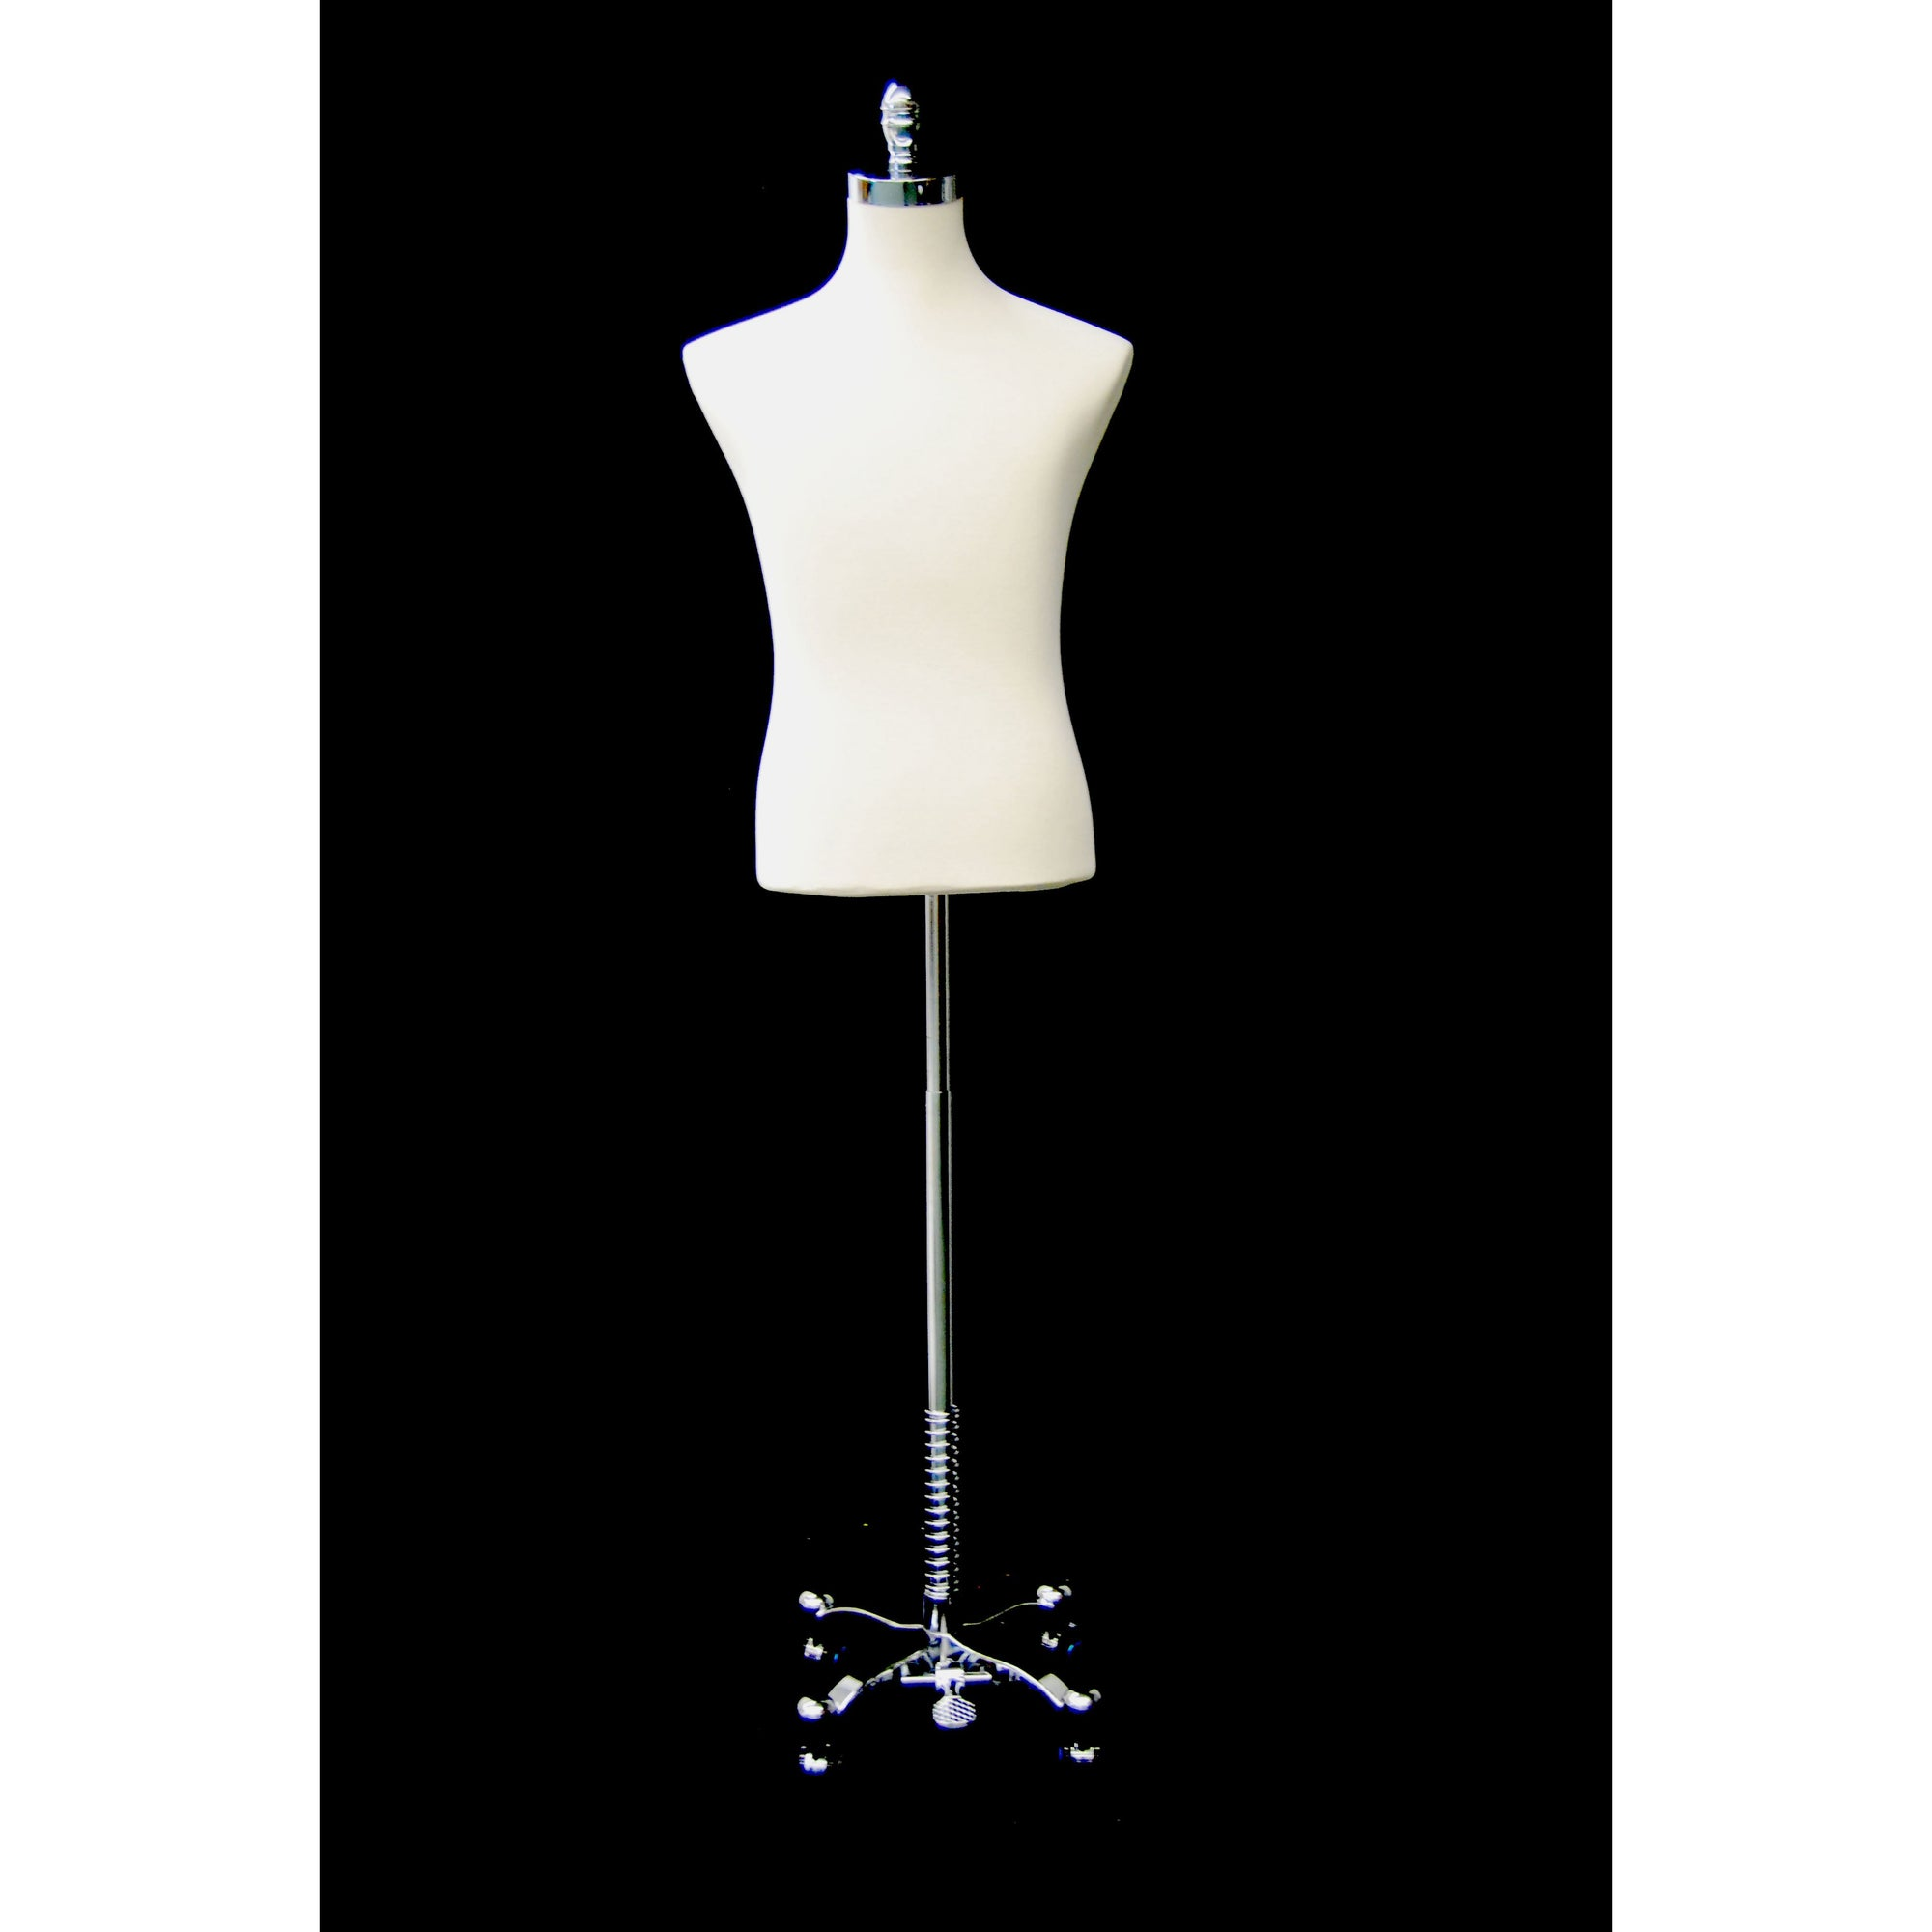 Male Display Dress Form on Chrome Rolling Base, male display form, off white male display form on chrome rolling base, off white male shirt form on chrome rolling base